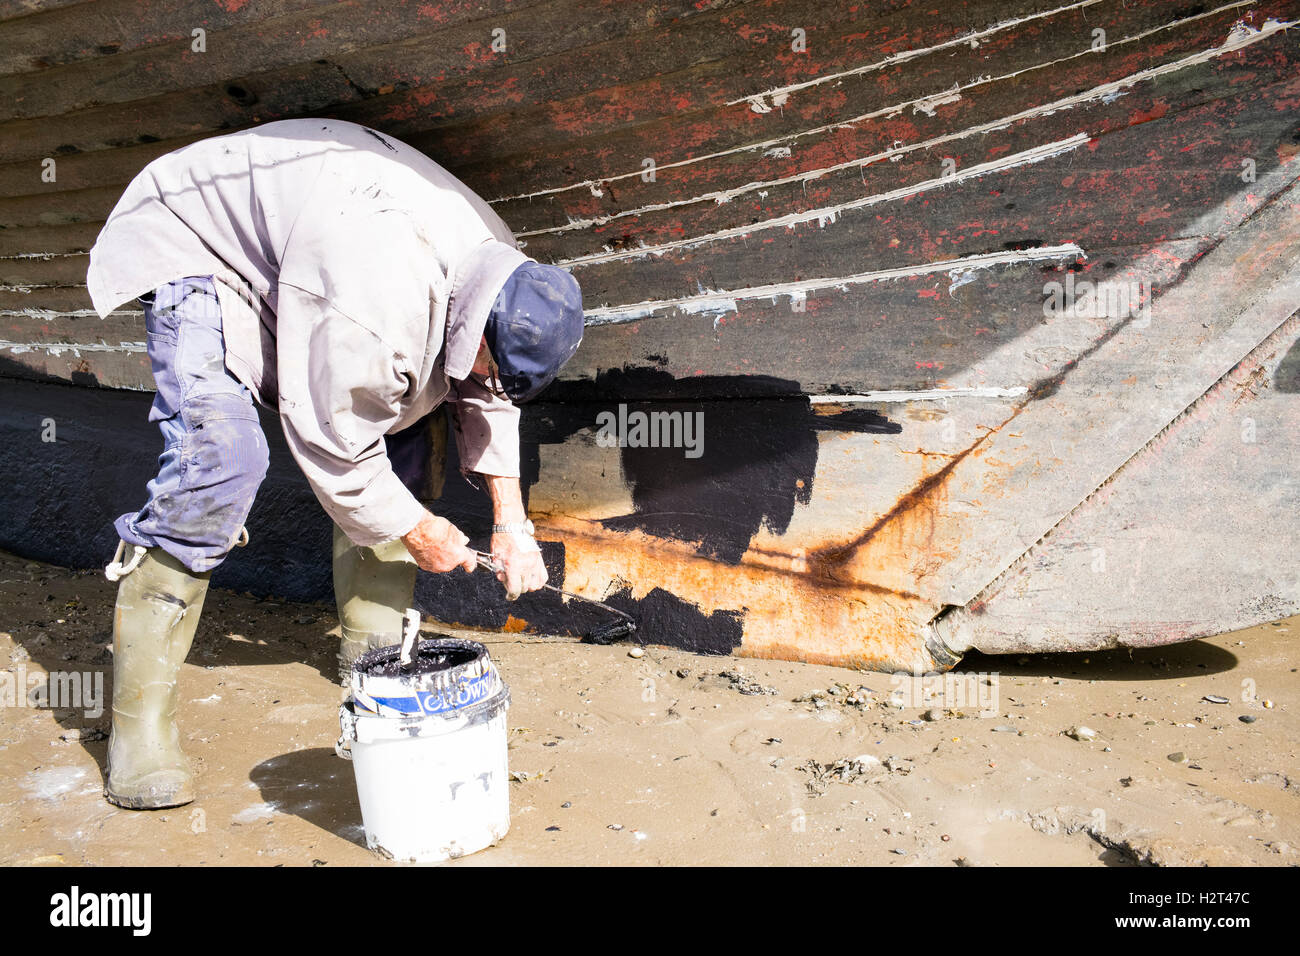 An 'old-salt' applying anti-fouling paint to the keel of his yacht, Conwy beach, Wales, UK - Stock Image